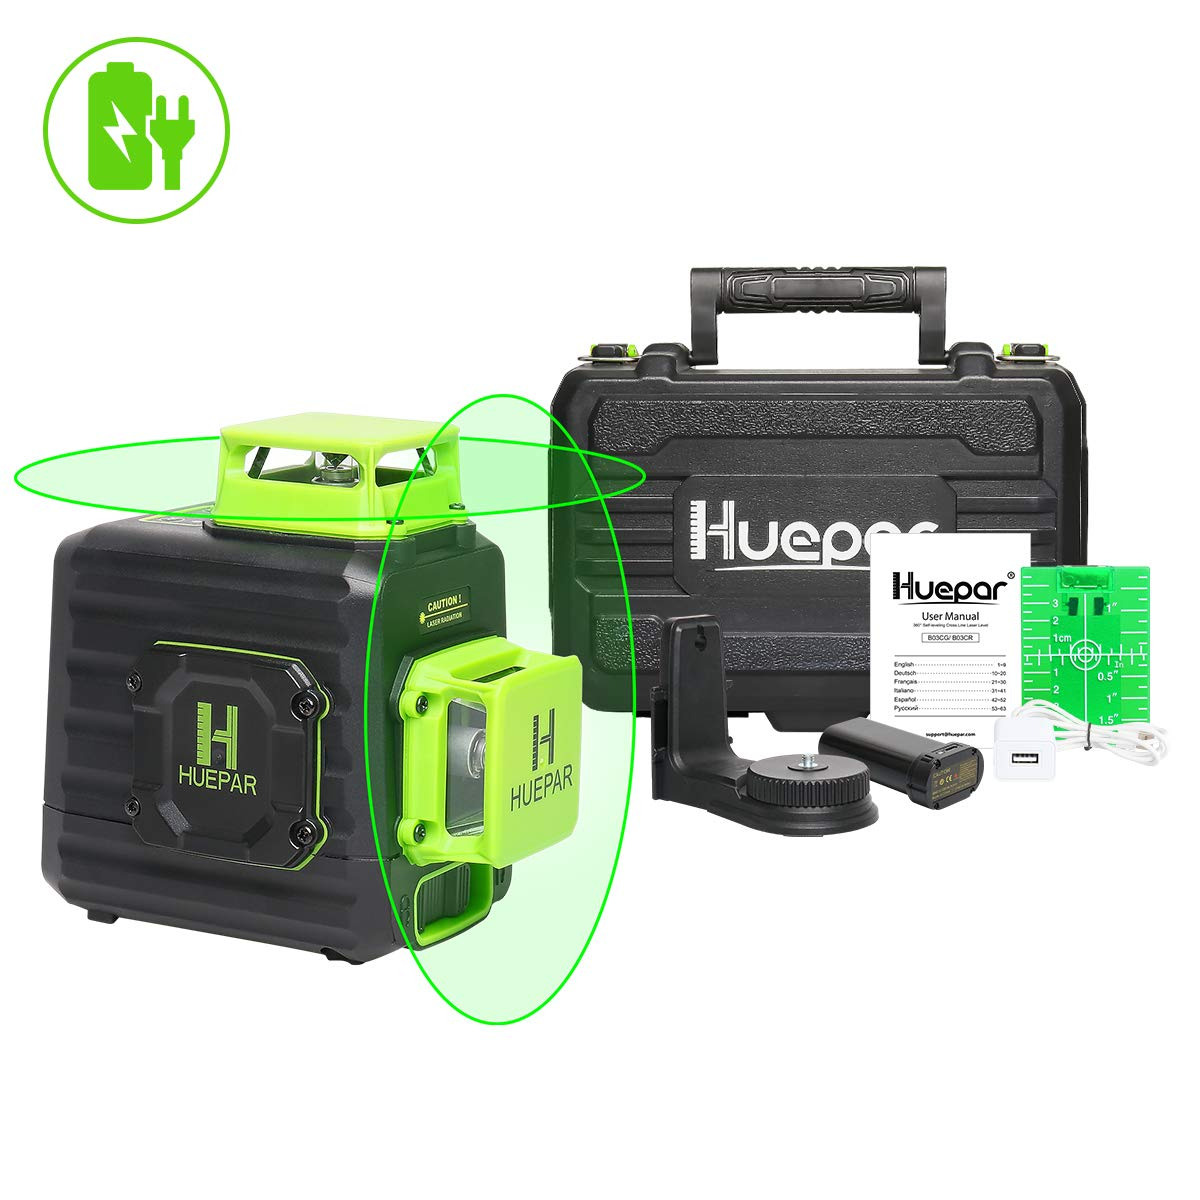 Huepar 2 x 360 Cross Line Self-leveling Laser Level, 360° Green Beam Dual Plane Leveling and Alignment Laser Tool, Li-ion Battery with Type-C Charging Port & Hard Carry Case Included - B02CG